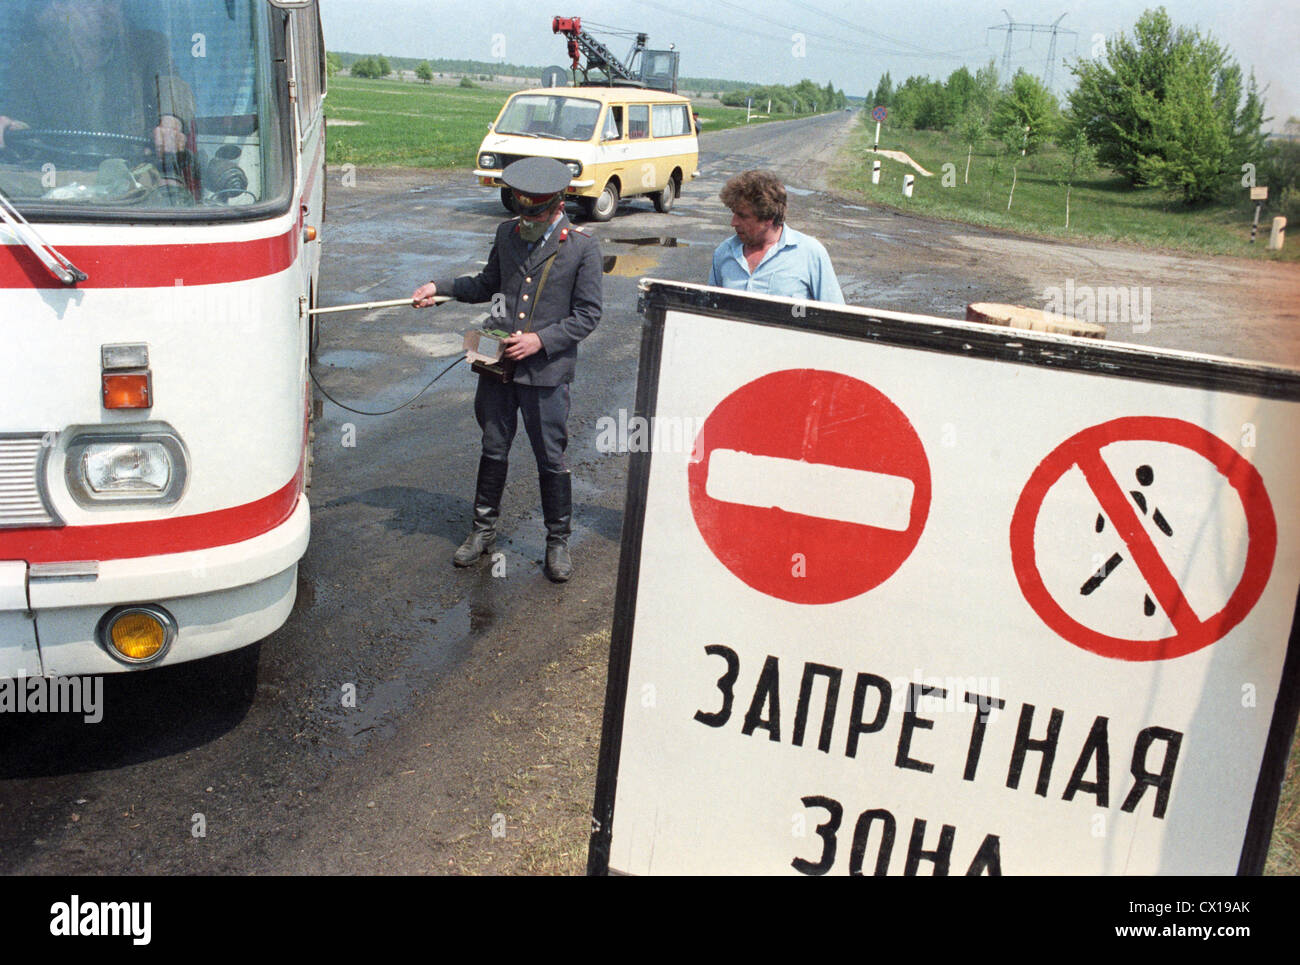 Kiev region. An officer of a dosimetric post checks transports leaving the zone of the Chernobyl disaster. Photo - Stock Image